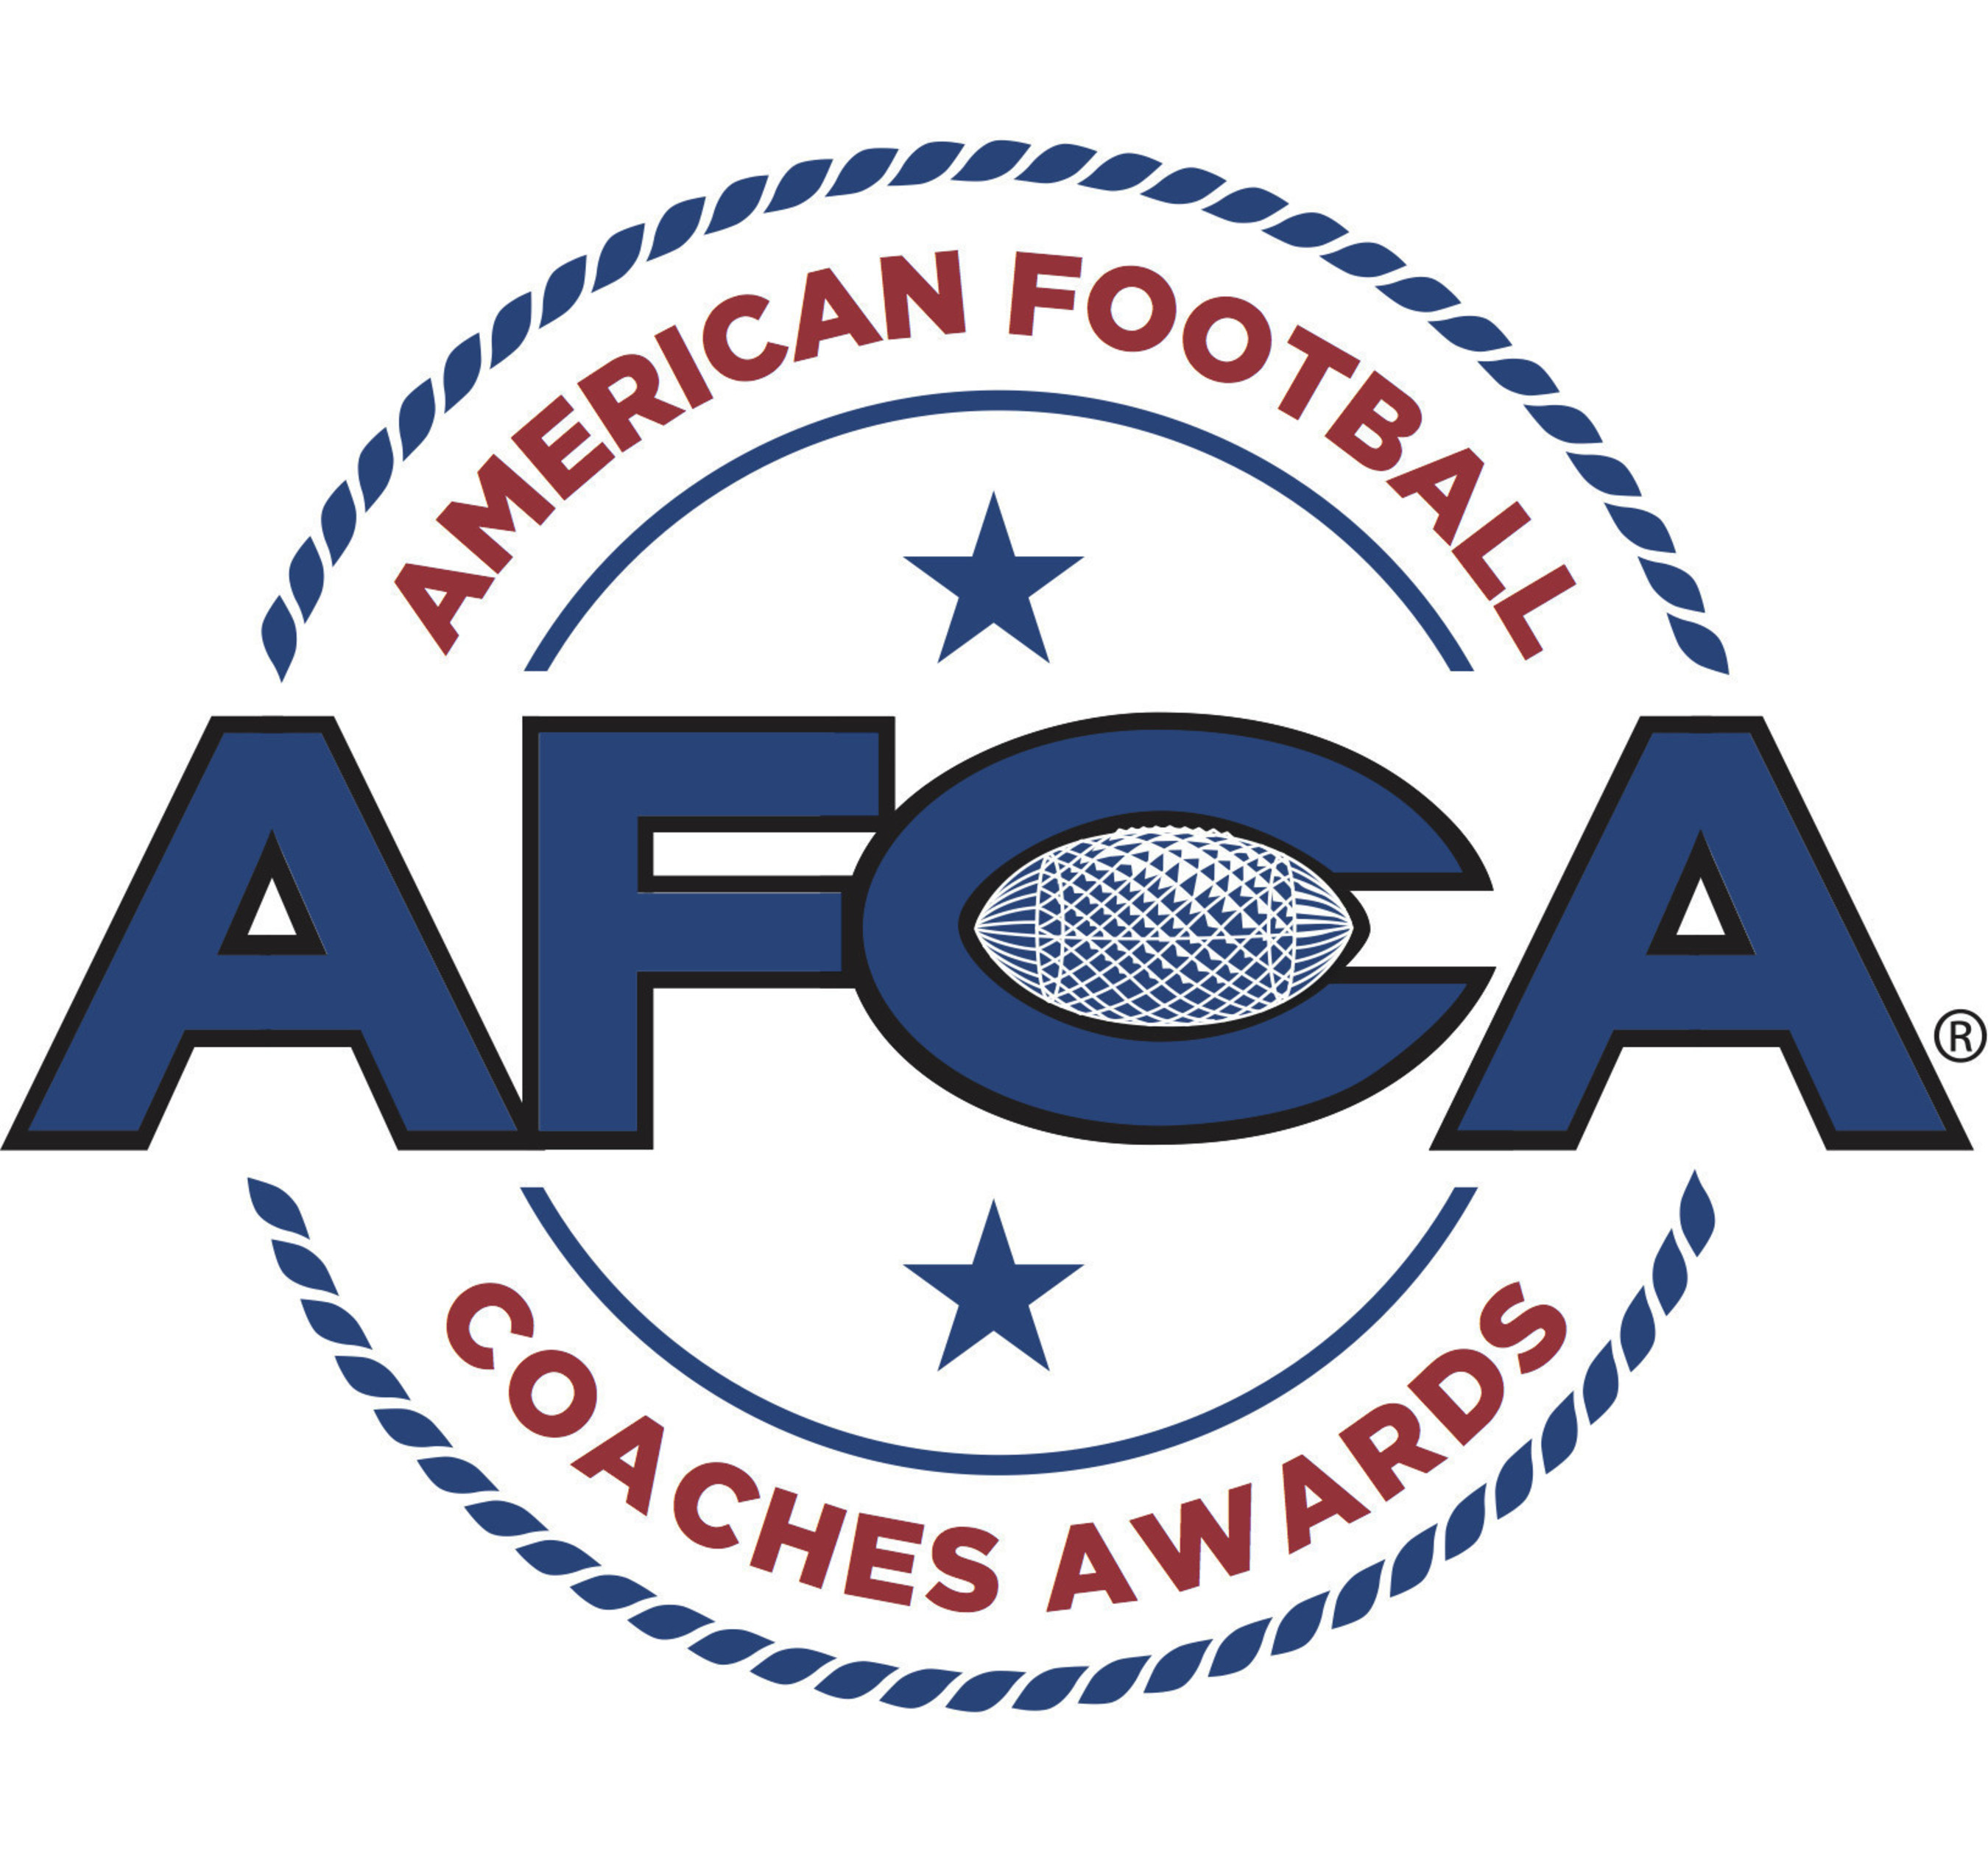 The AFCA American Football Coaches Awards will be televised January 10, 2017, on CBS Sports Network.